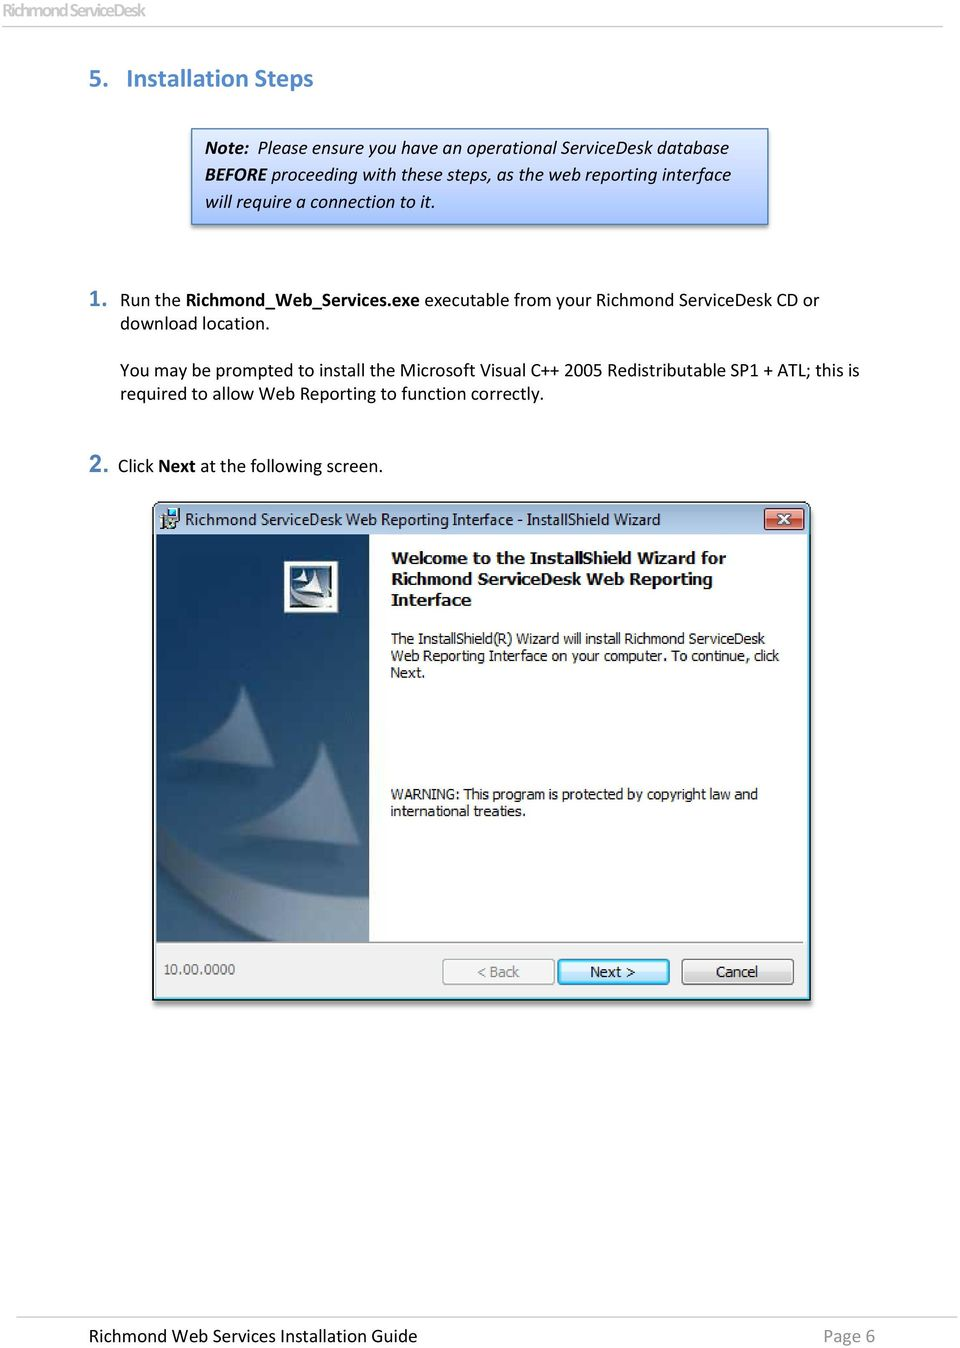 exe executable from your Richmond ServiceDesk CD or download location.